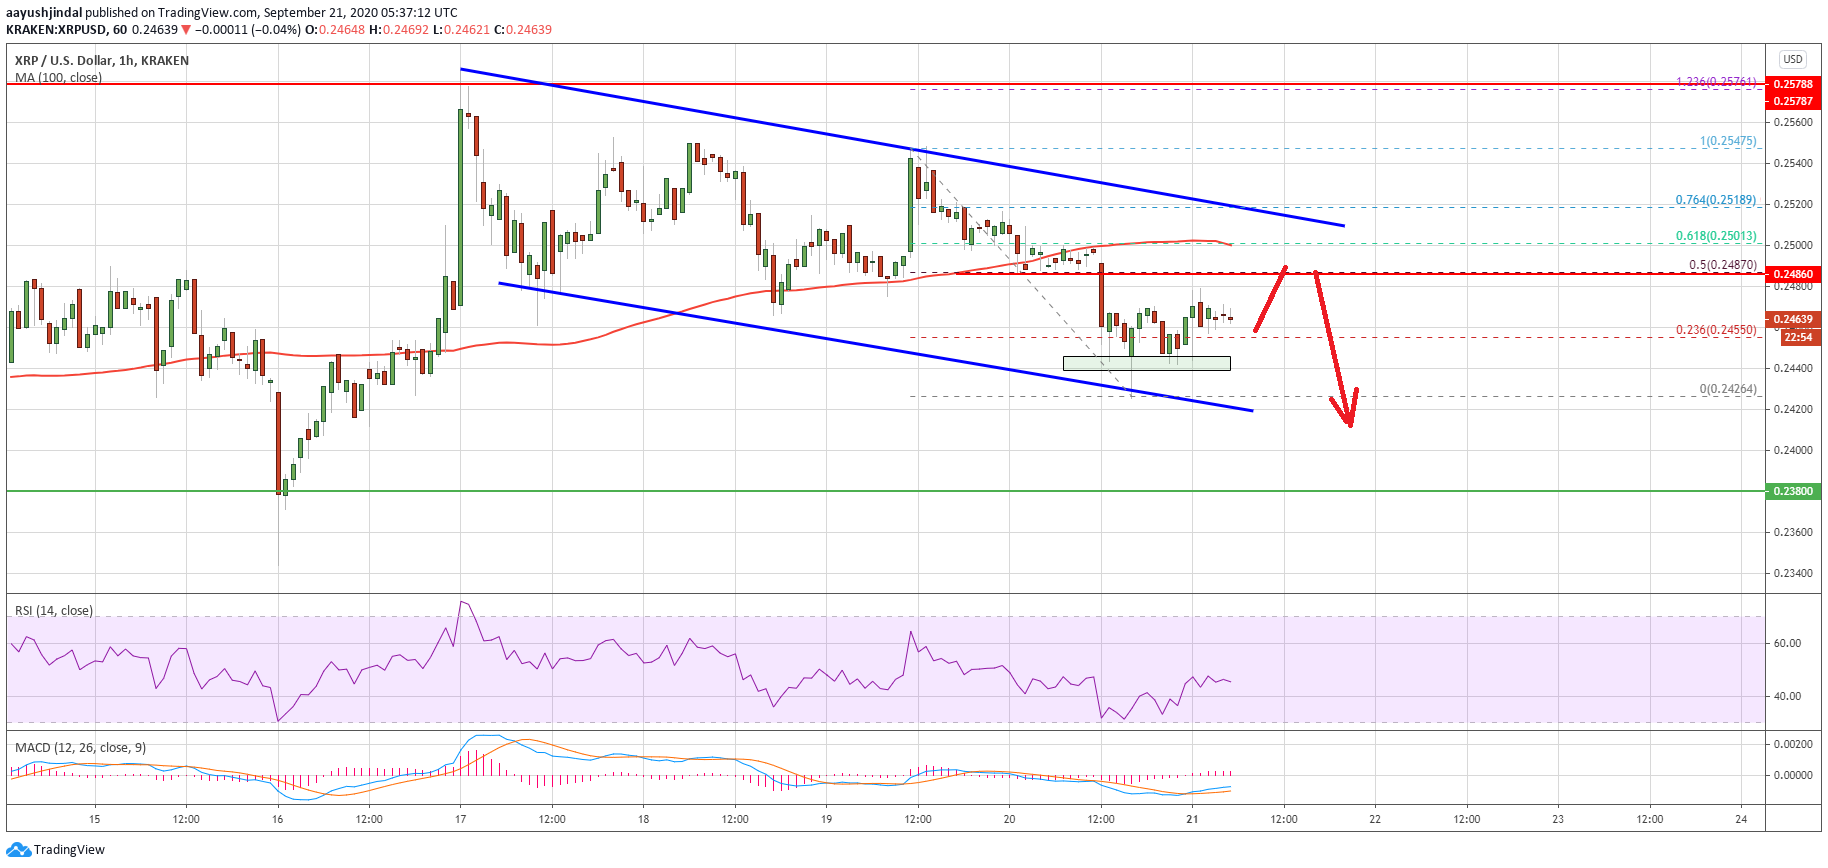 Ripple (XRP) Price Indicators Show Vulnerability To A Sharp Decline